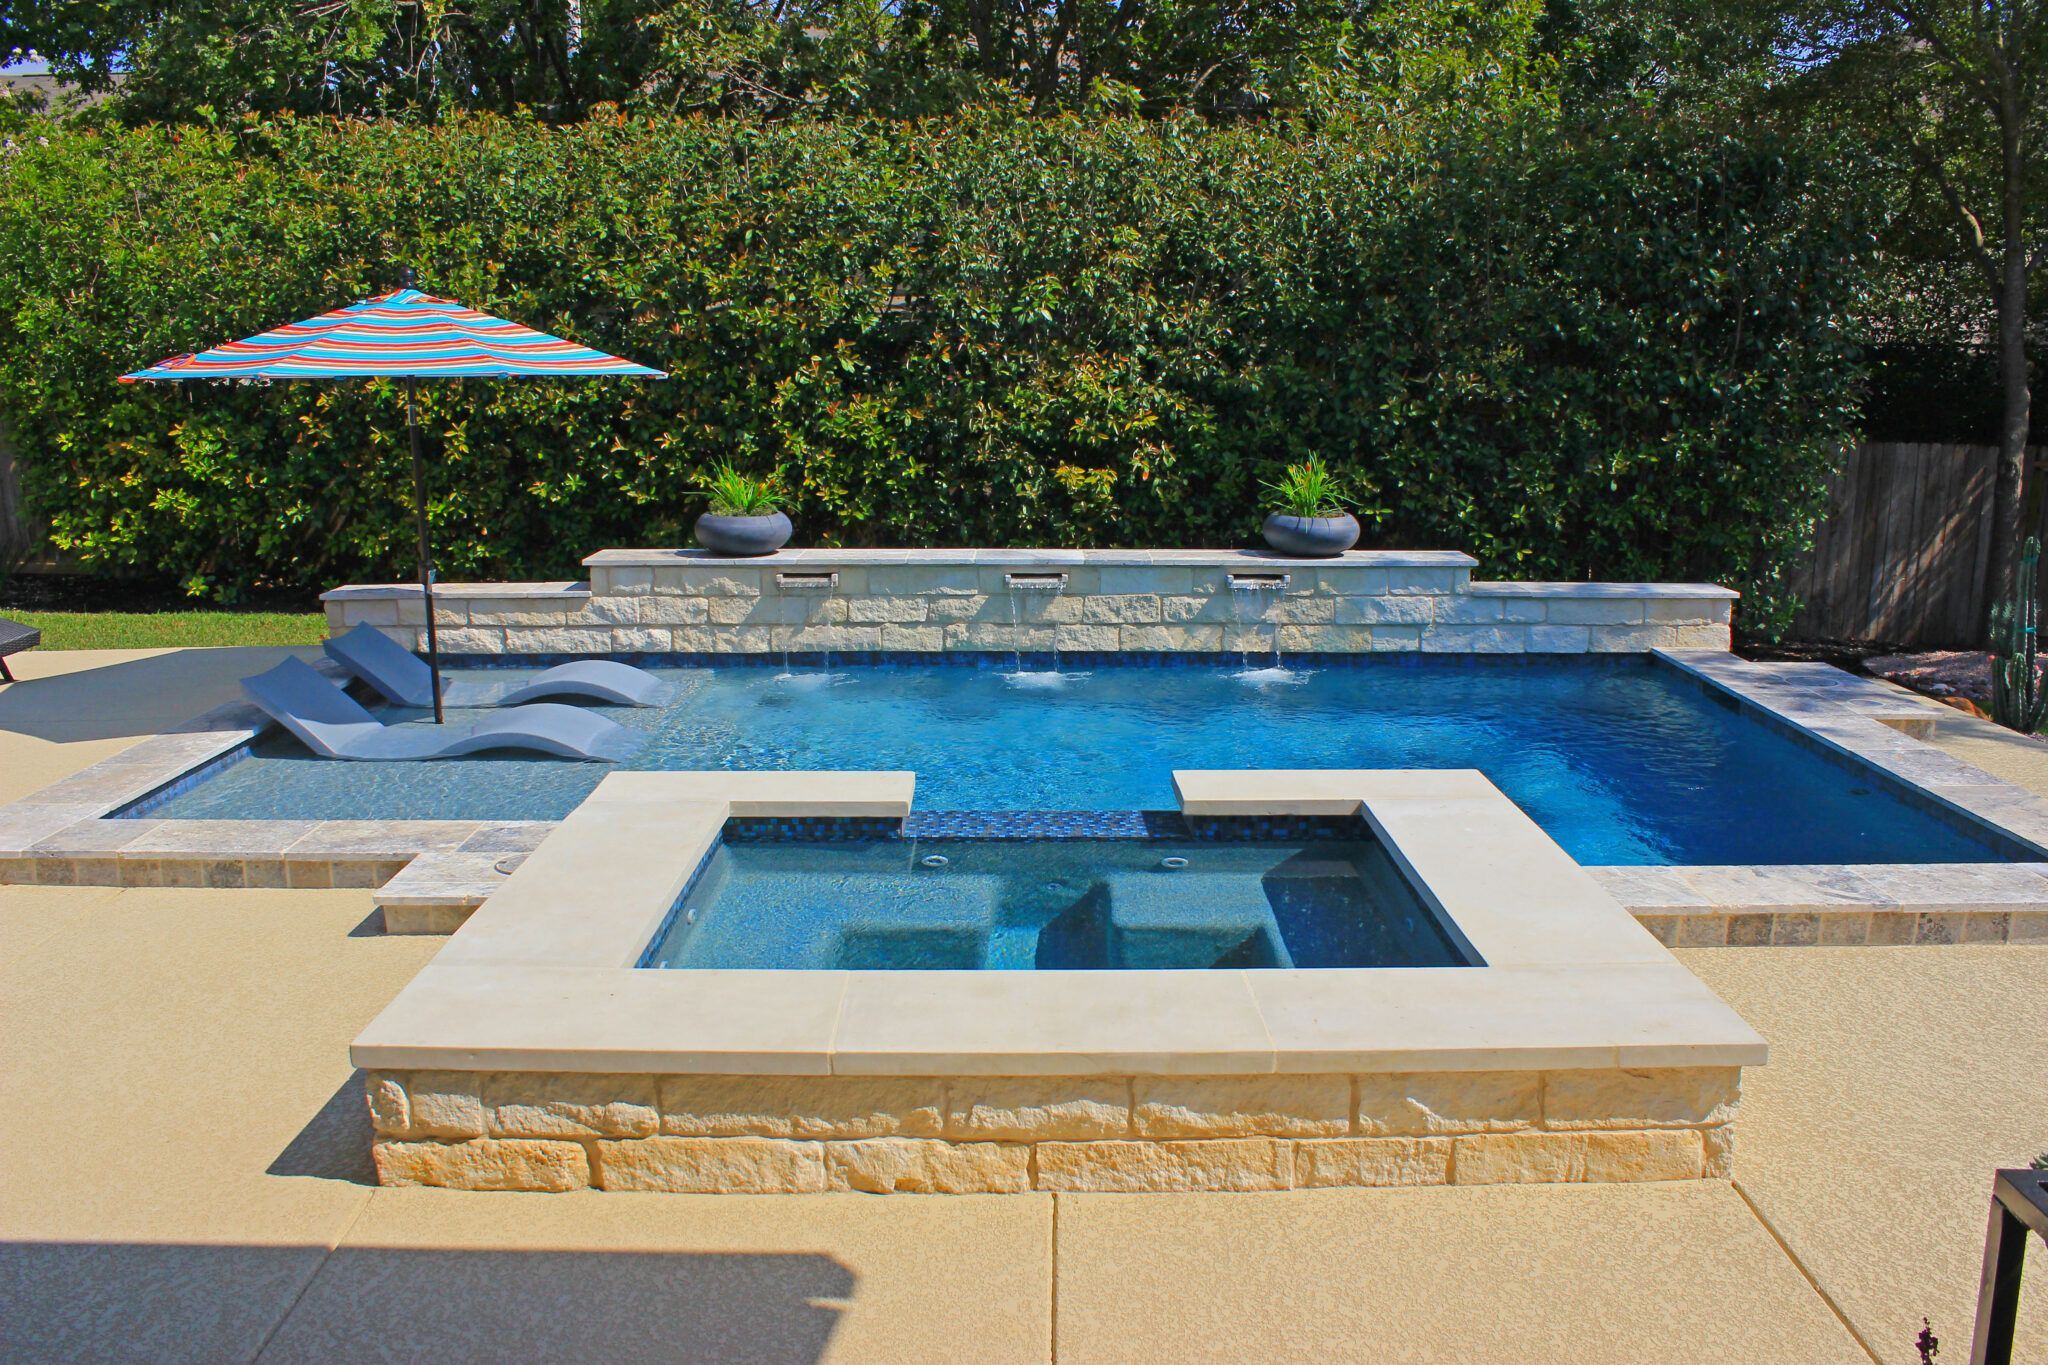 Small Inground Pools For Small Yards Austin Igp Spa Build Under Construction Trou Pools For Small Yards Backyard Pool Designs Swimming Pools Backyard